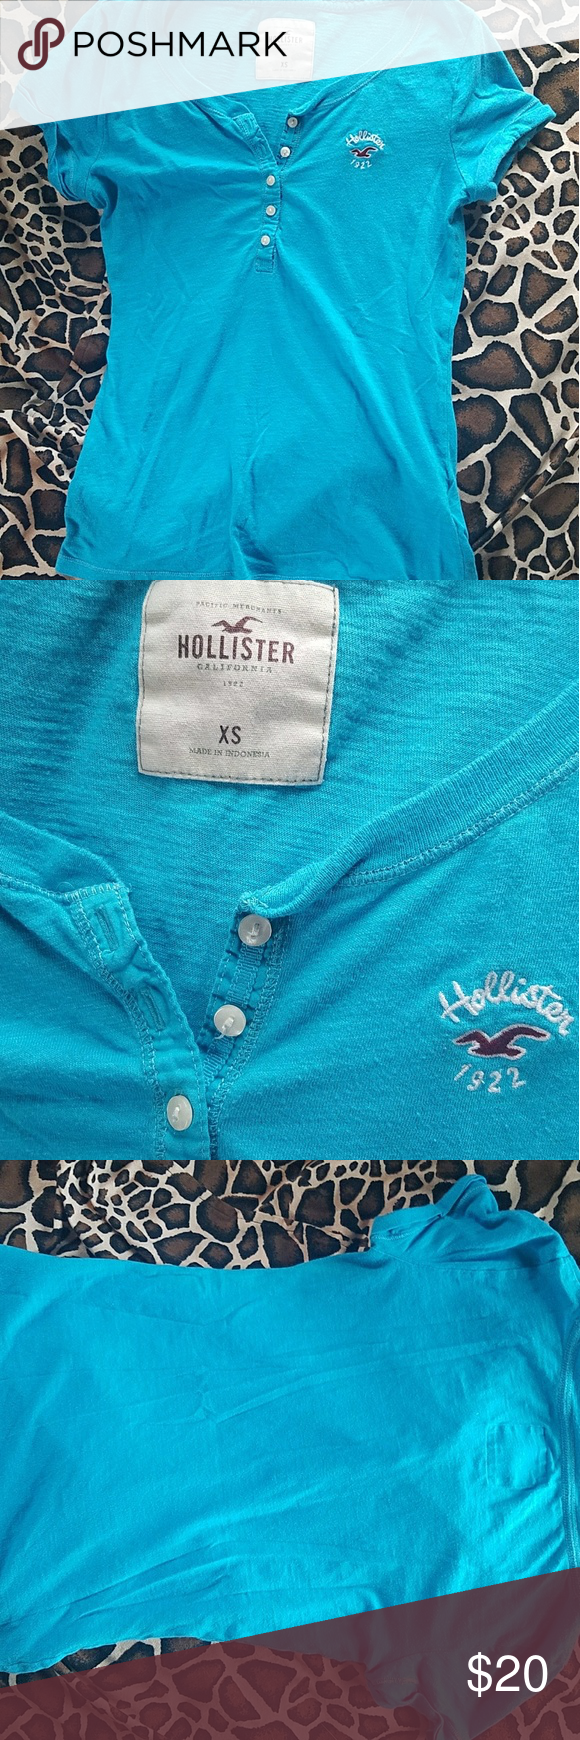 Hollister tee Only worn a few times.   Still bright in color. Hollister Tops Tees - Short Sleeve